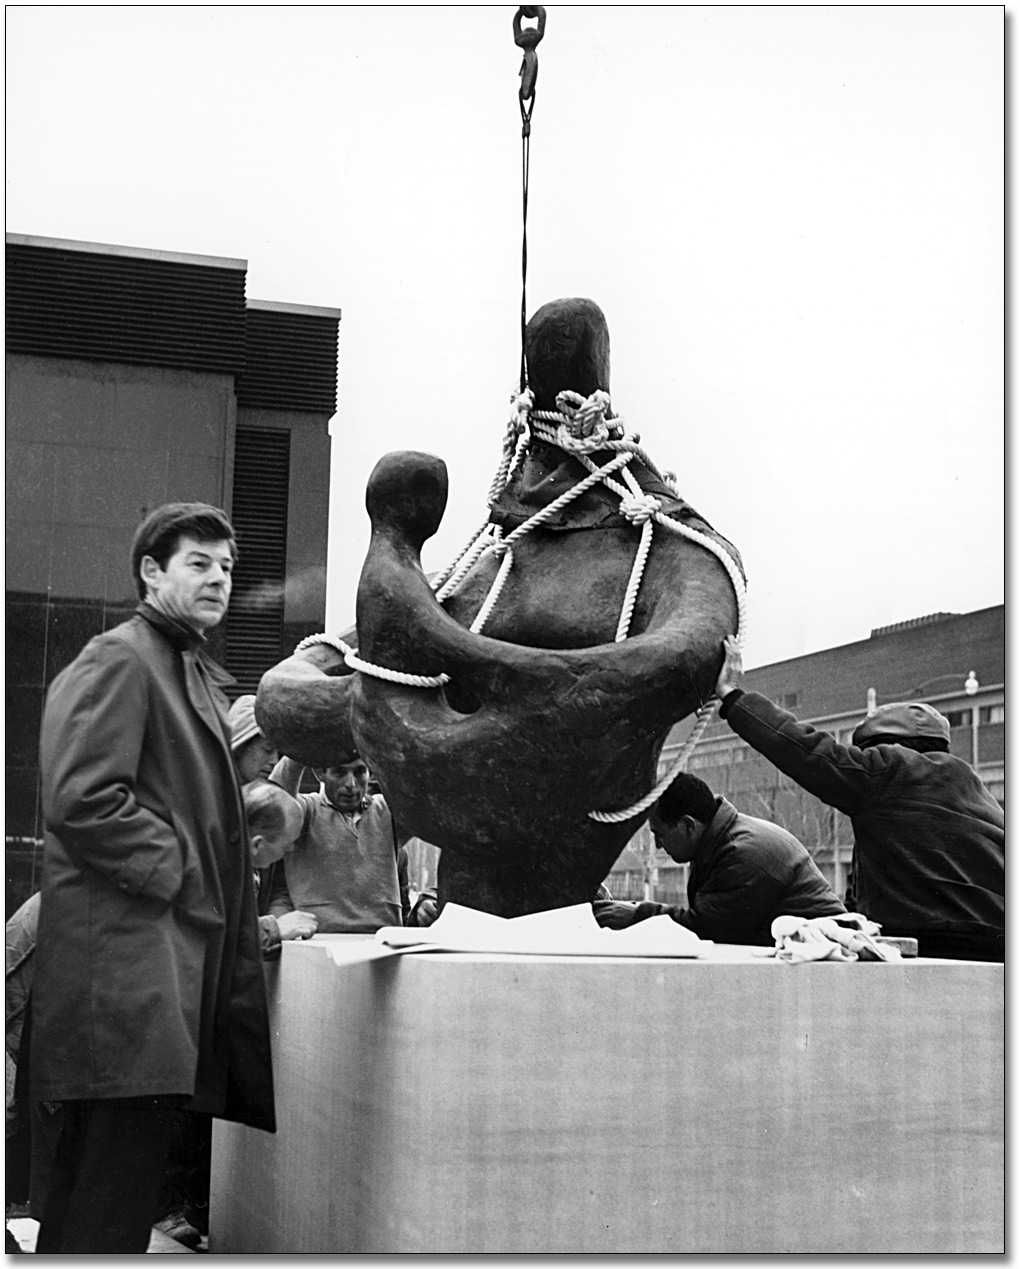 Photographie : Jack Harman supervisant l'installation de sa sculpture, Mother and Child, dans la partie ouest de l'édifice Macdonald, 1968